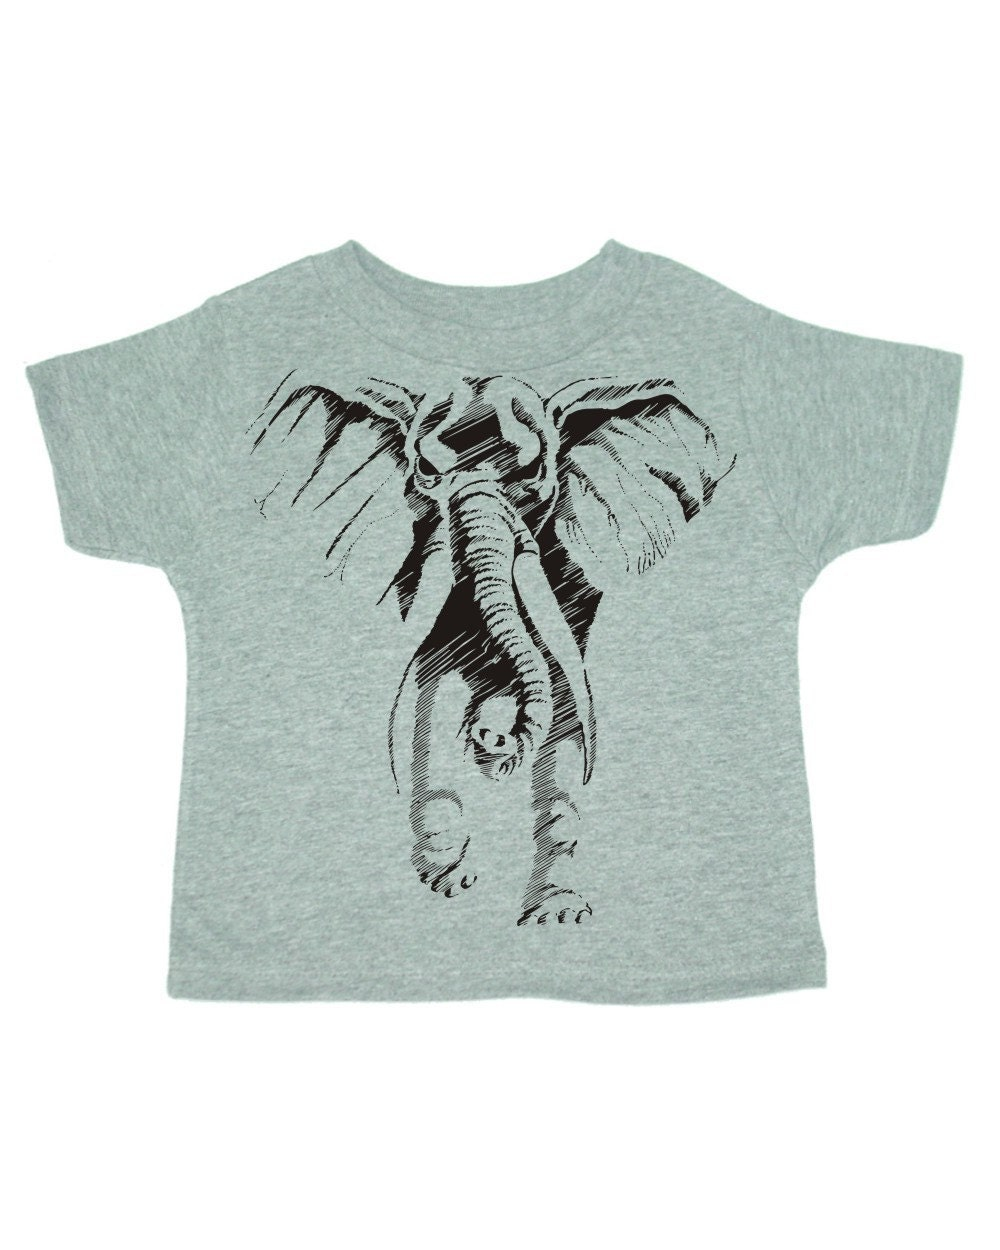 Ghost Elephant on Infants Rabbit Skins Short Sleeve tee